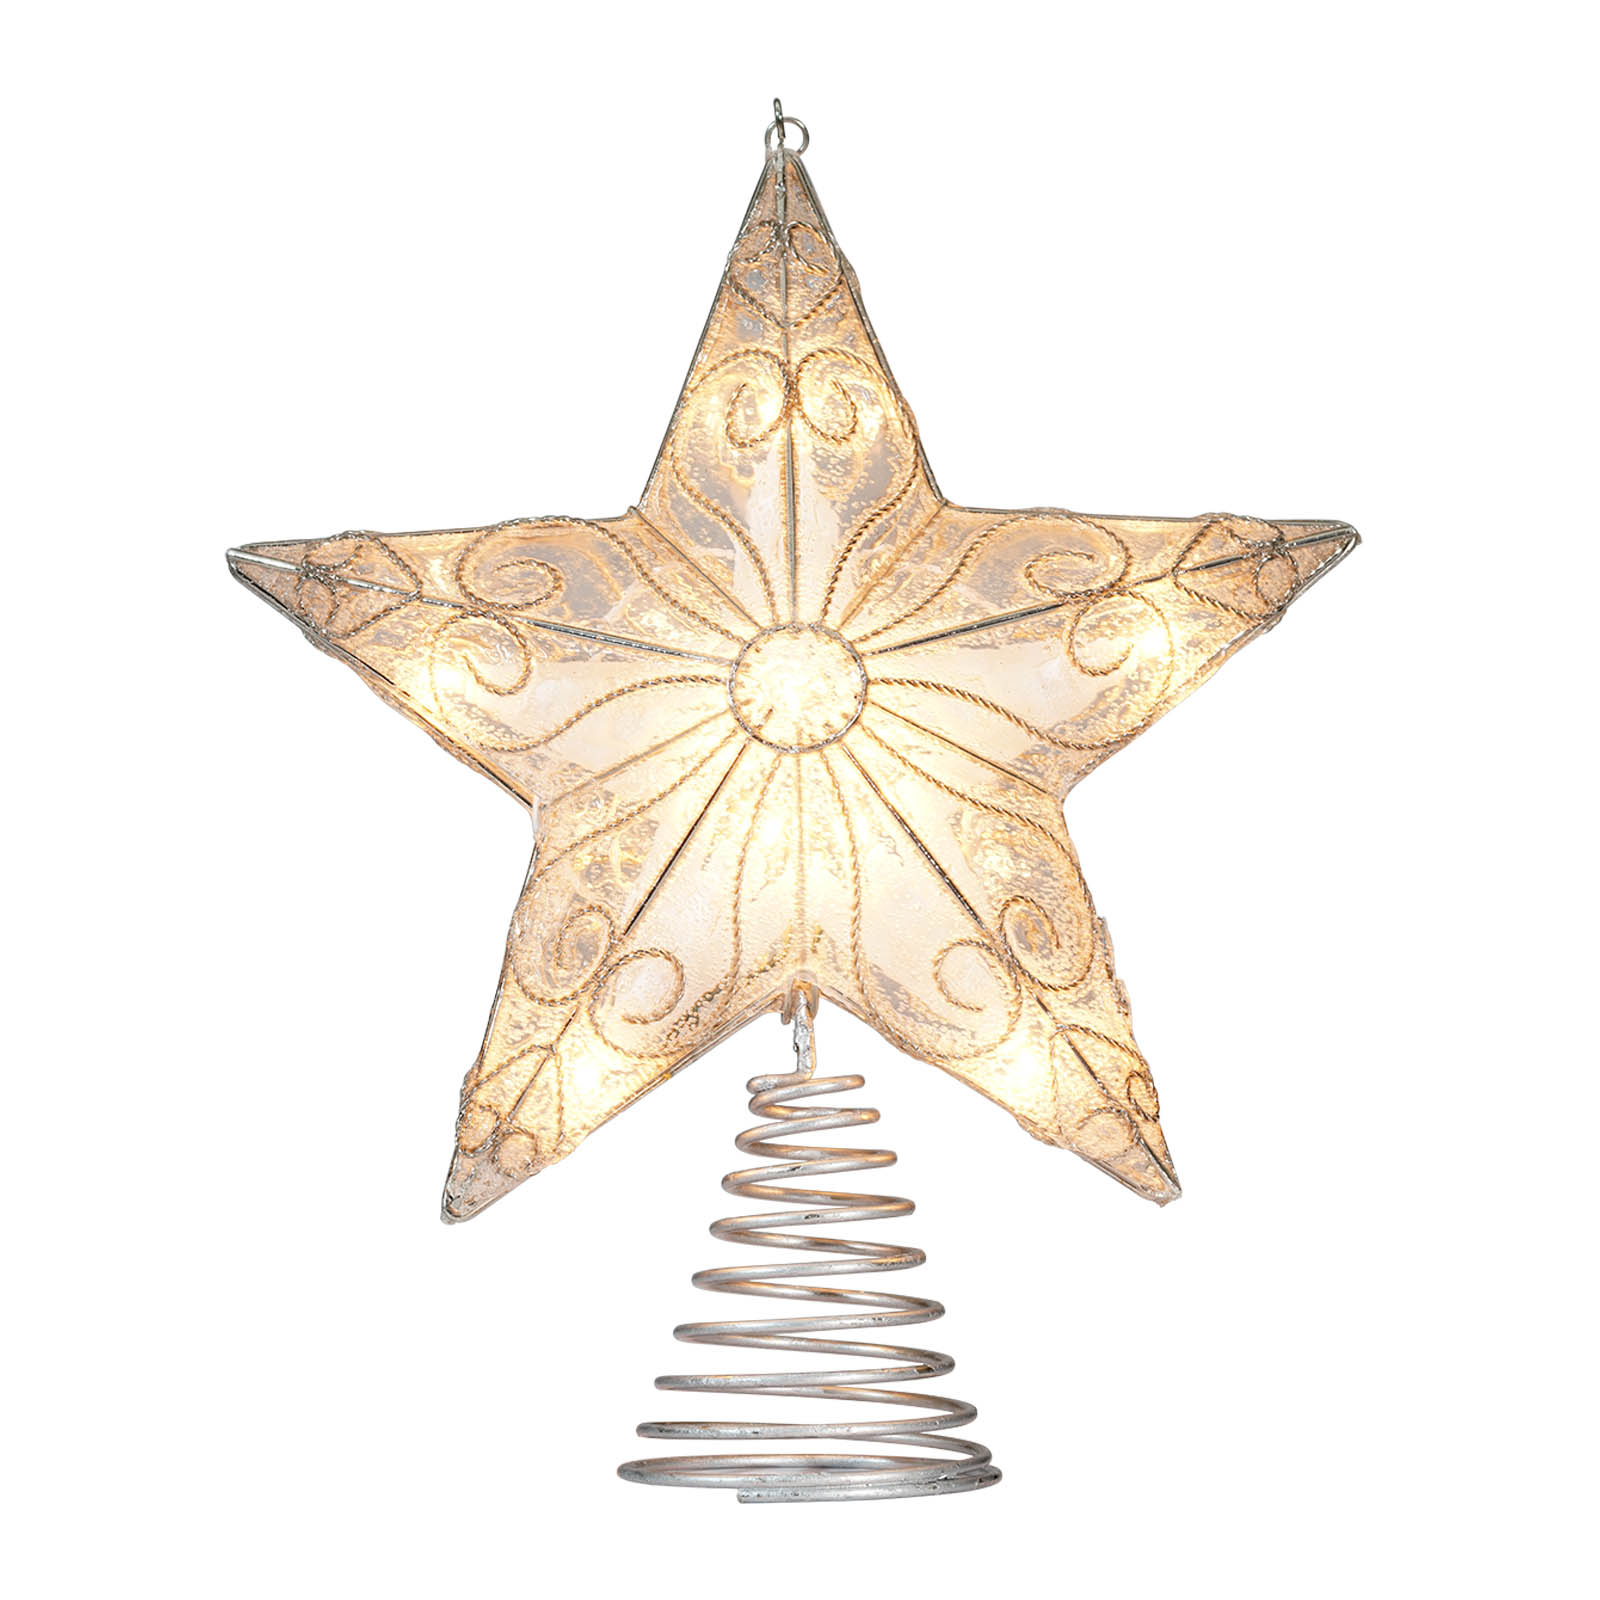 Find the Silver Star Christmas Tree Topper By Ashland® at Michaels